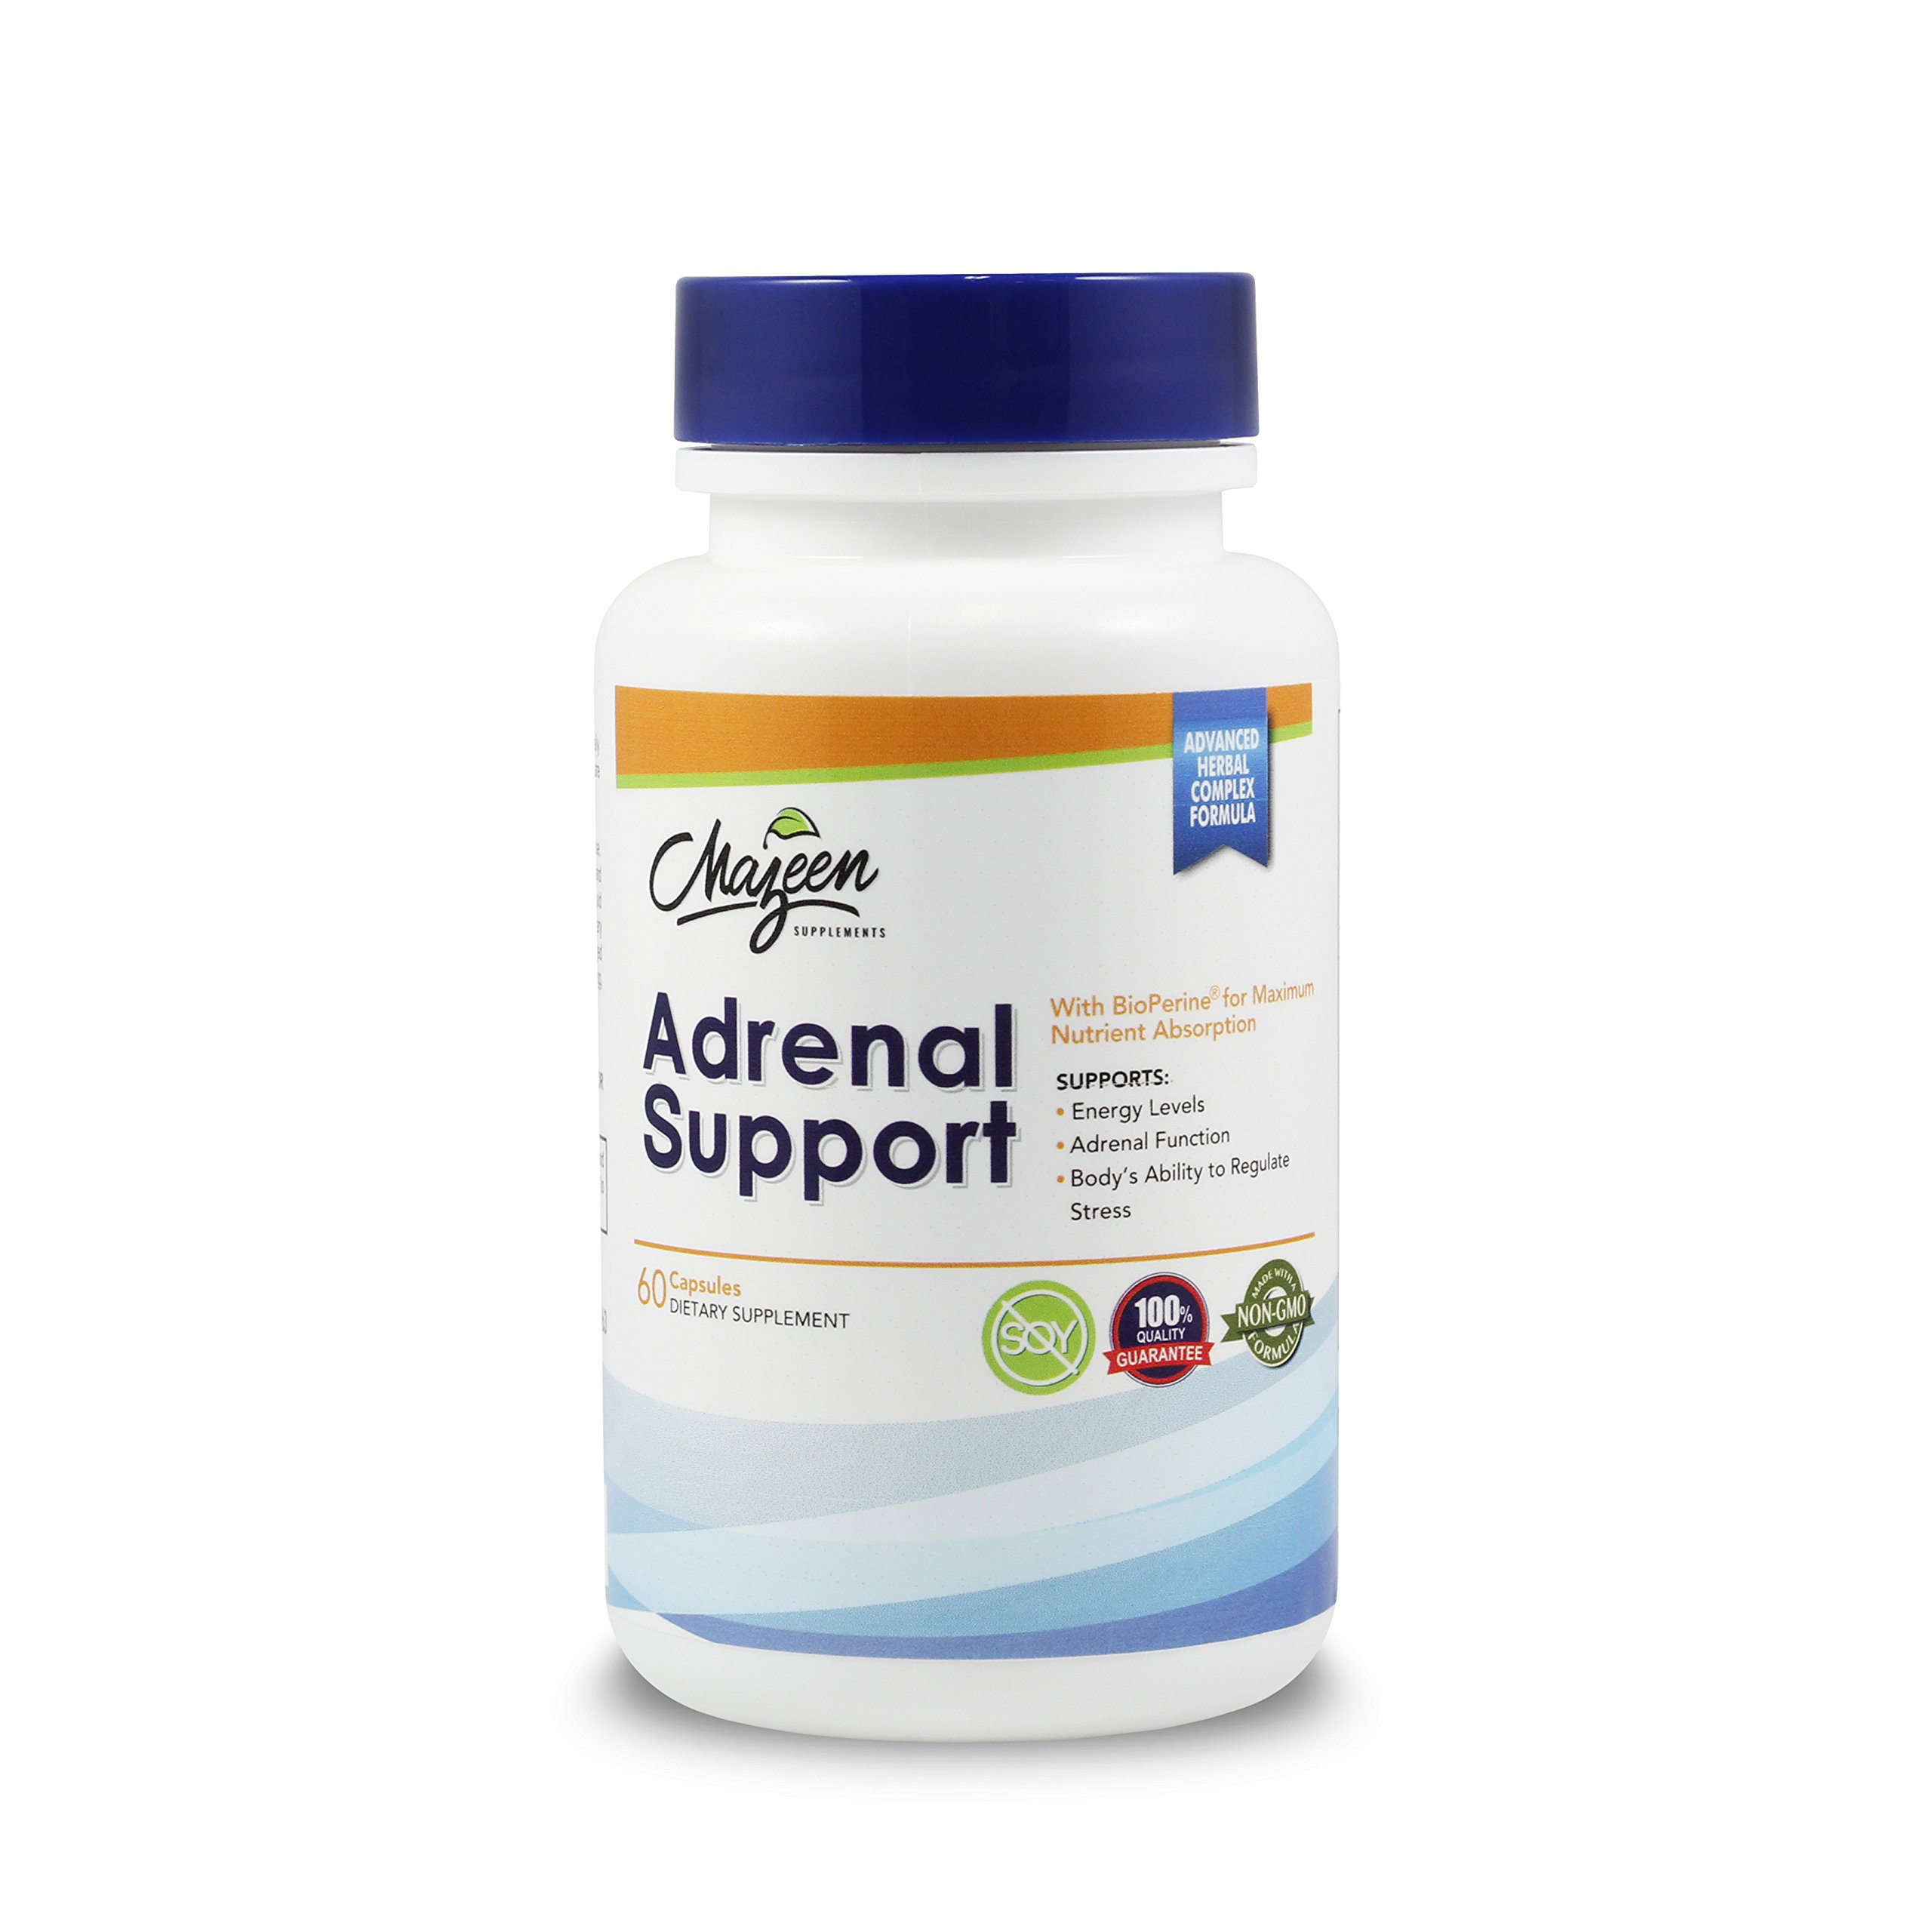 Adrenal Support Supplements - Special Formula for Adrenal Health, Cortisol Support, Adrenal Fatigue, Stress Anxiety Relief, Energy with Ashwagandha, Rhodiola Rosea, Holy Basil by Mazeen Supplements